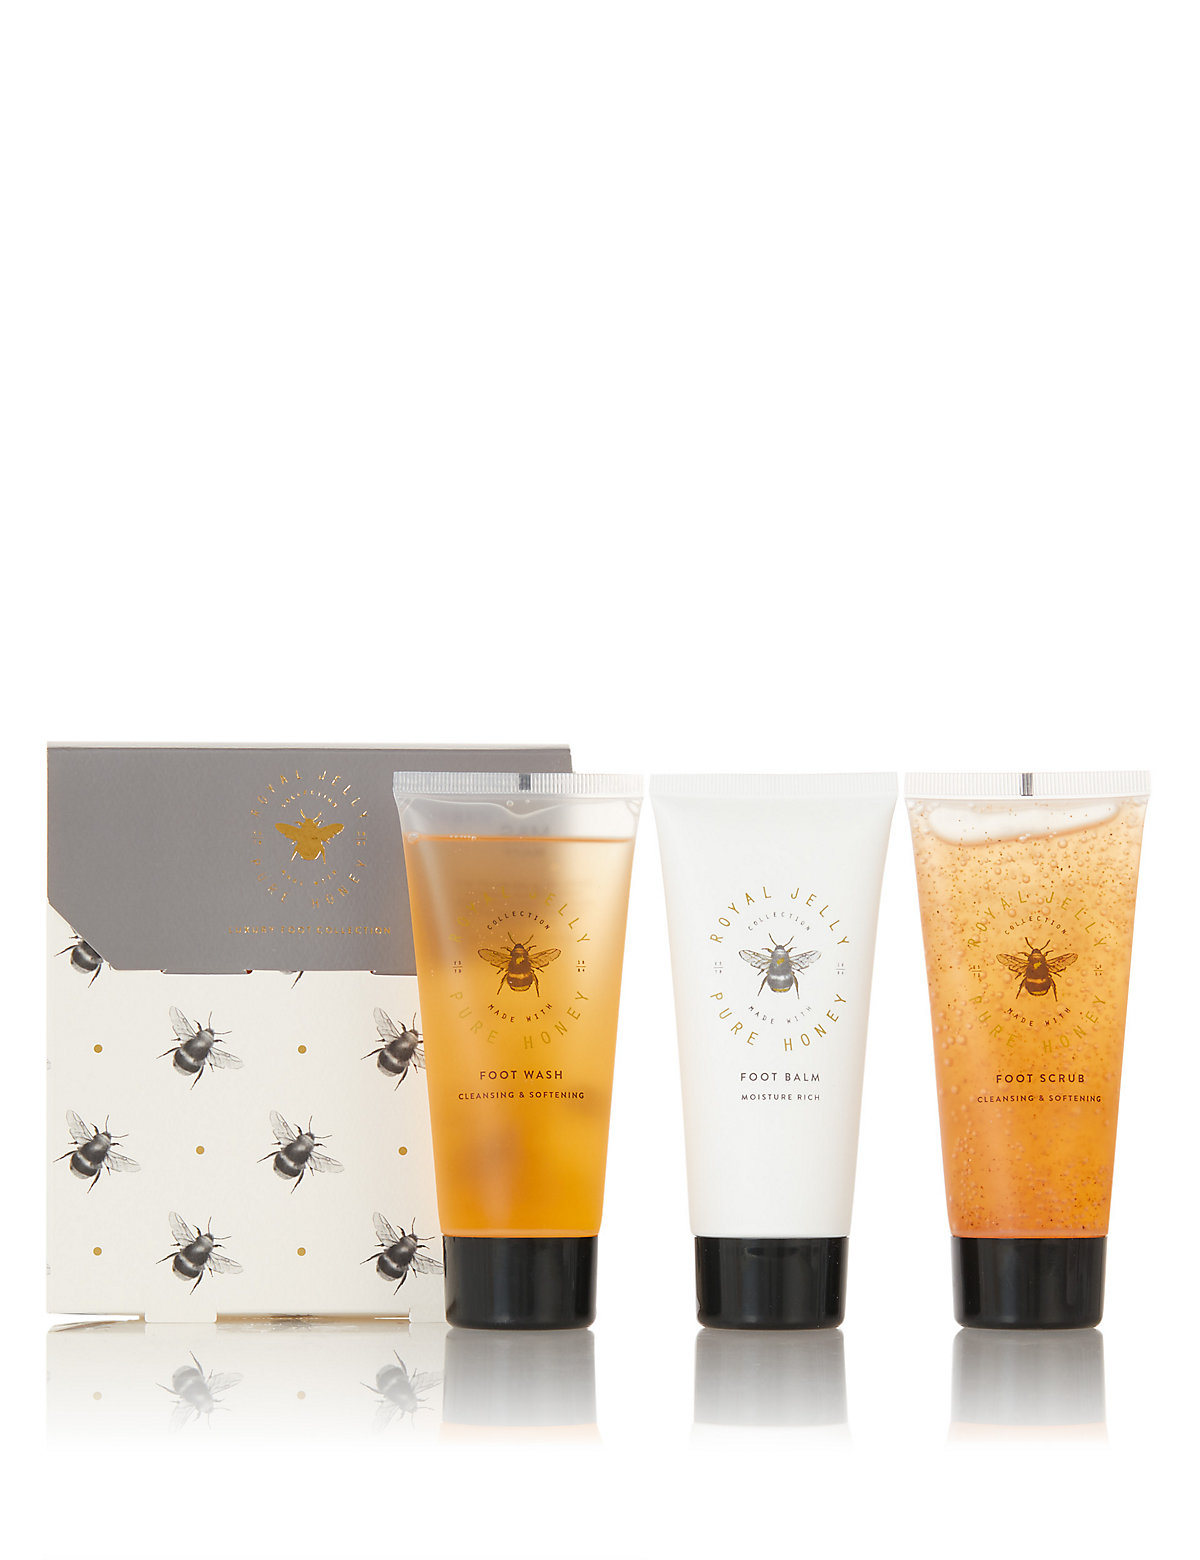 Royal Jelly Foot Treats Gift Set